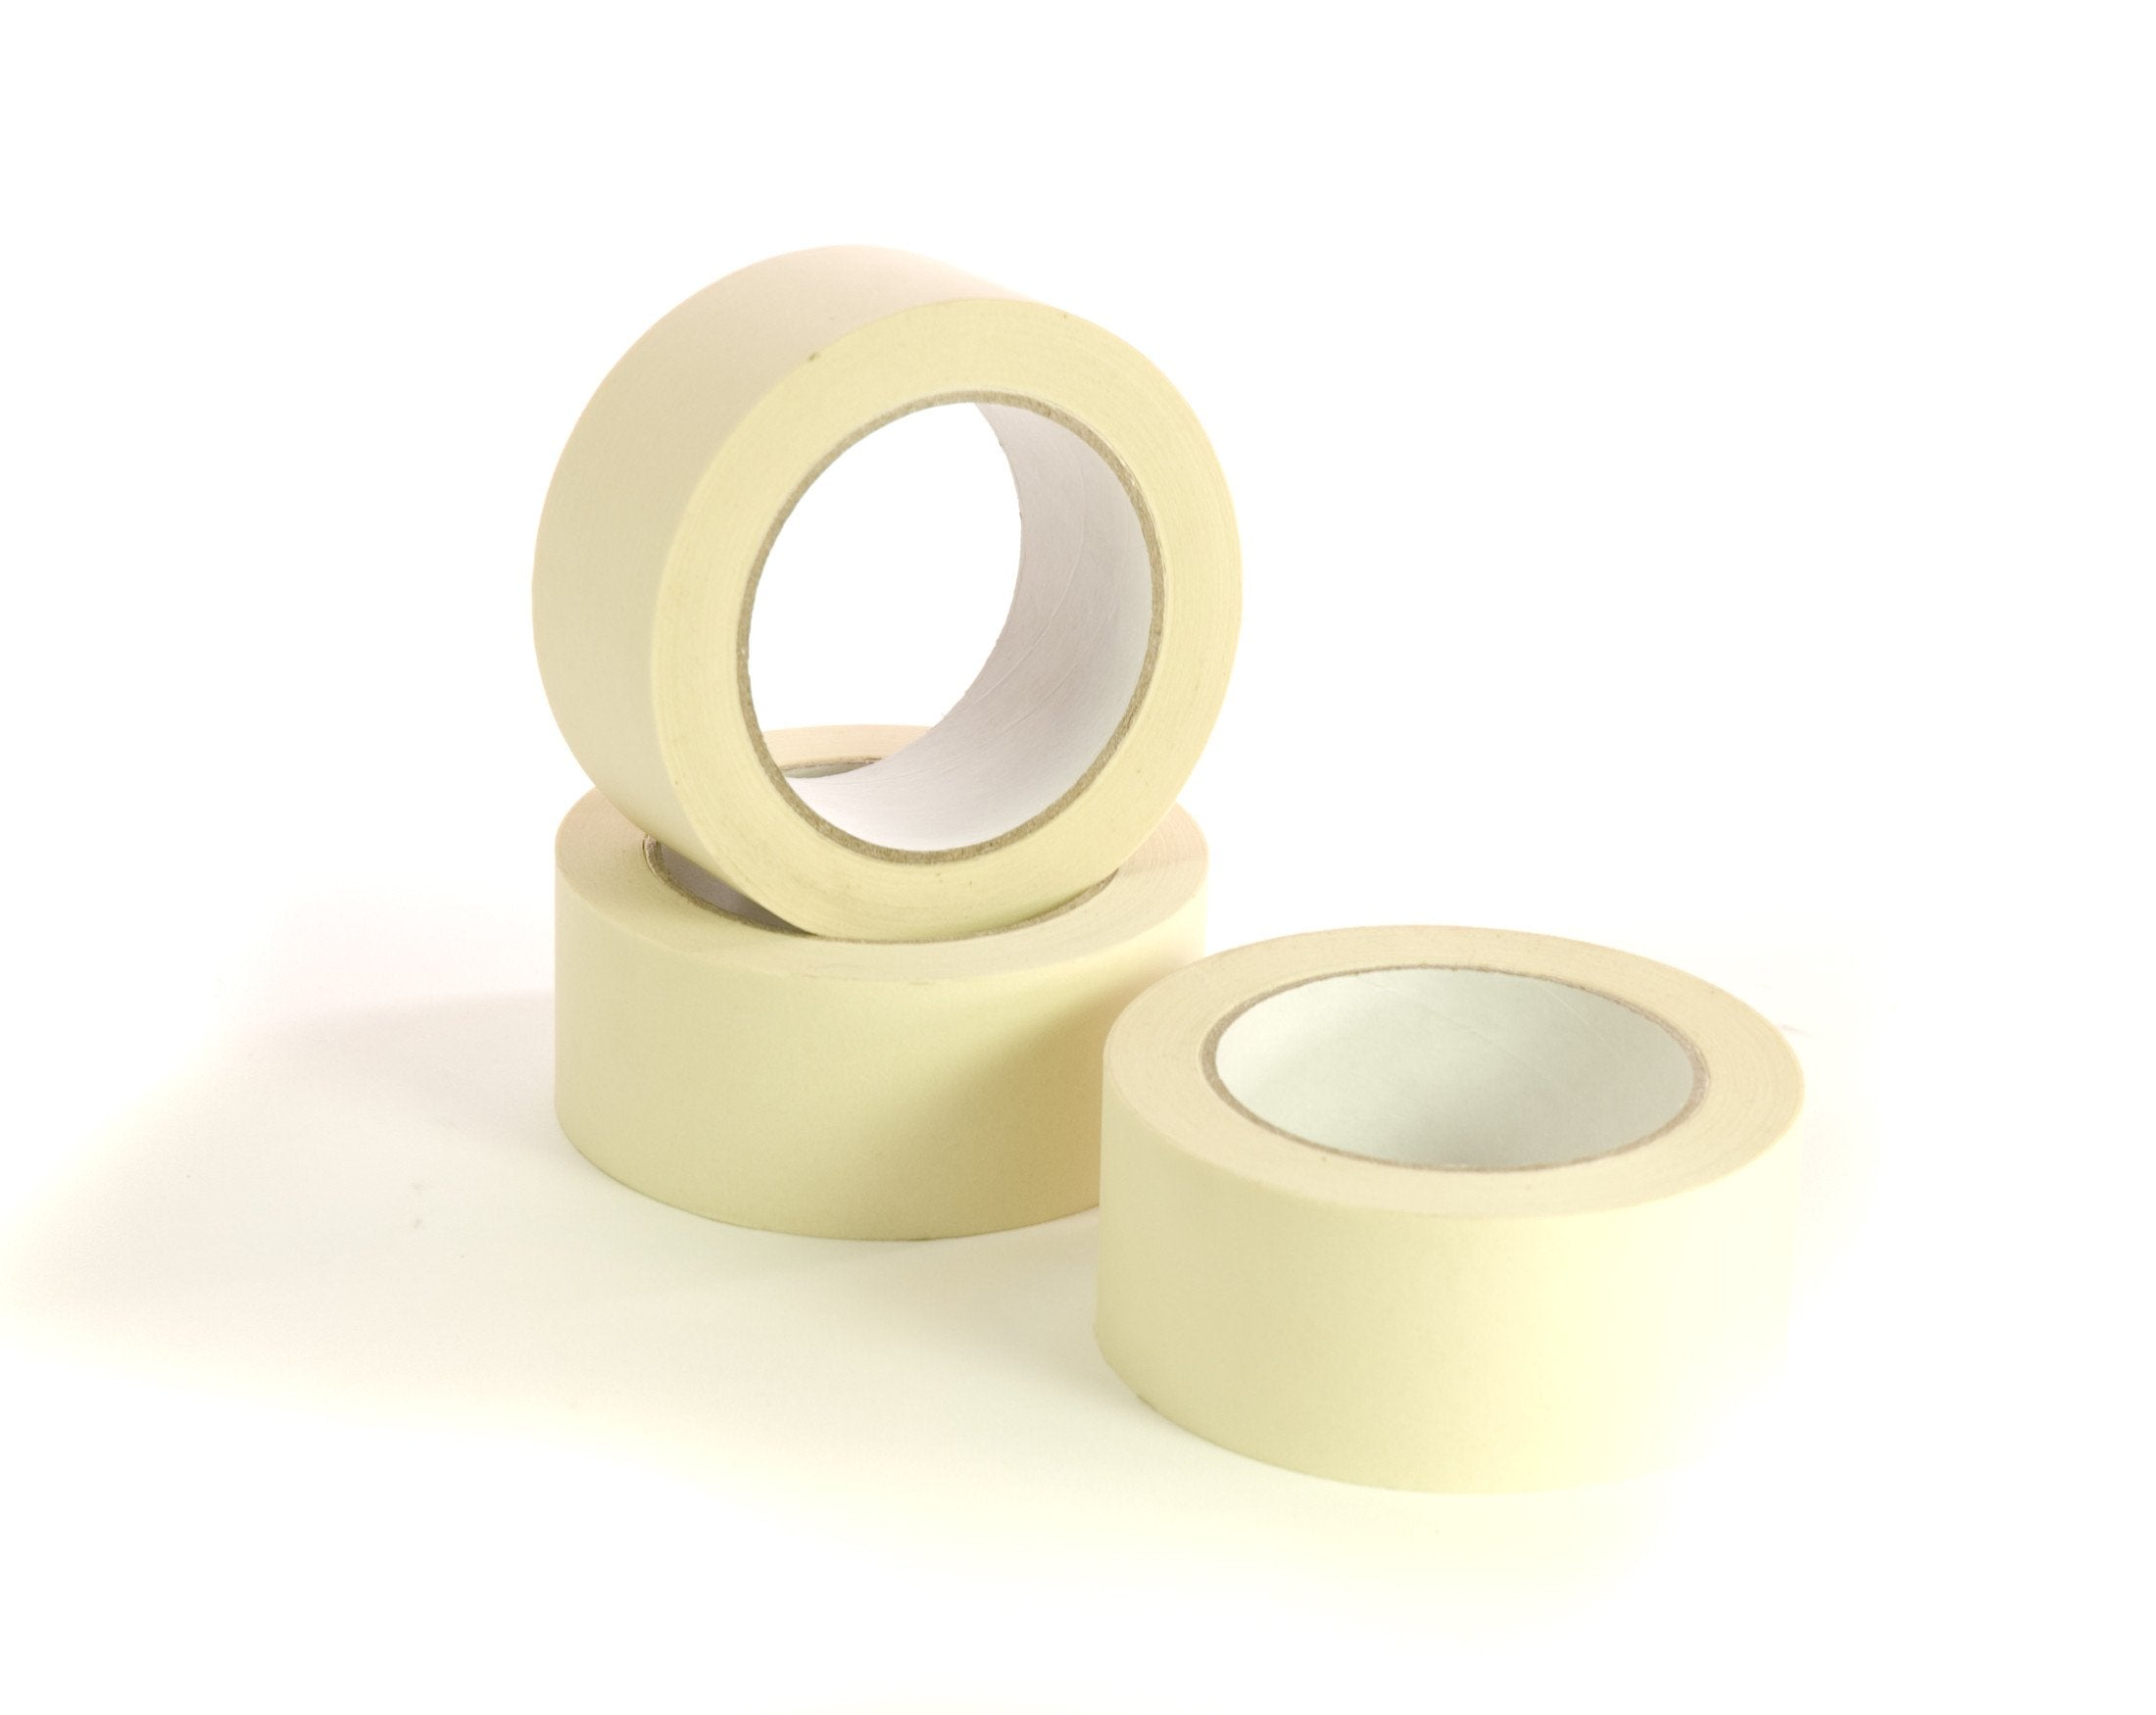 All About Masking tape, Packing Tape